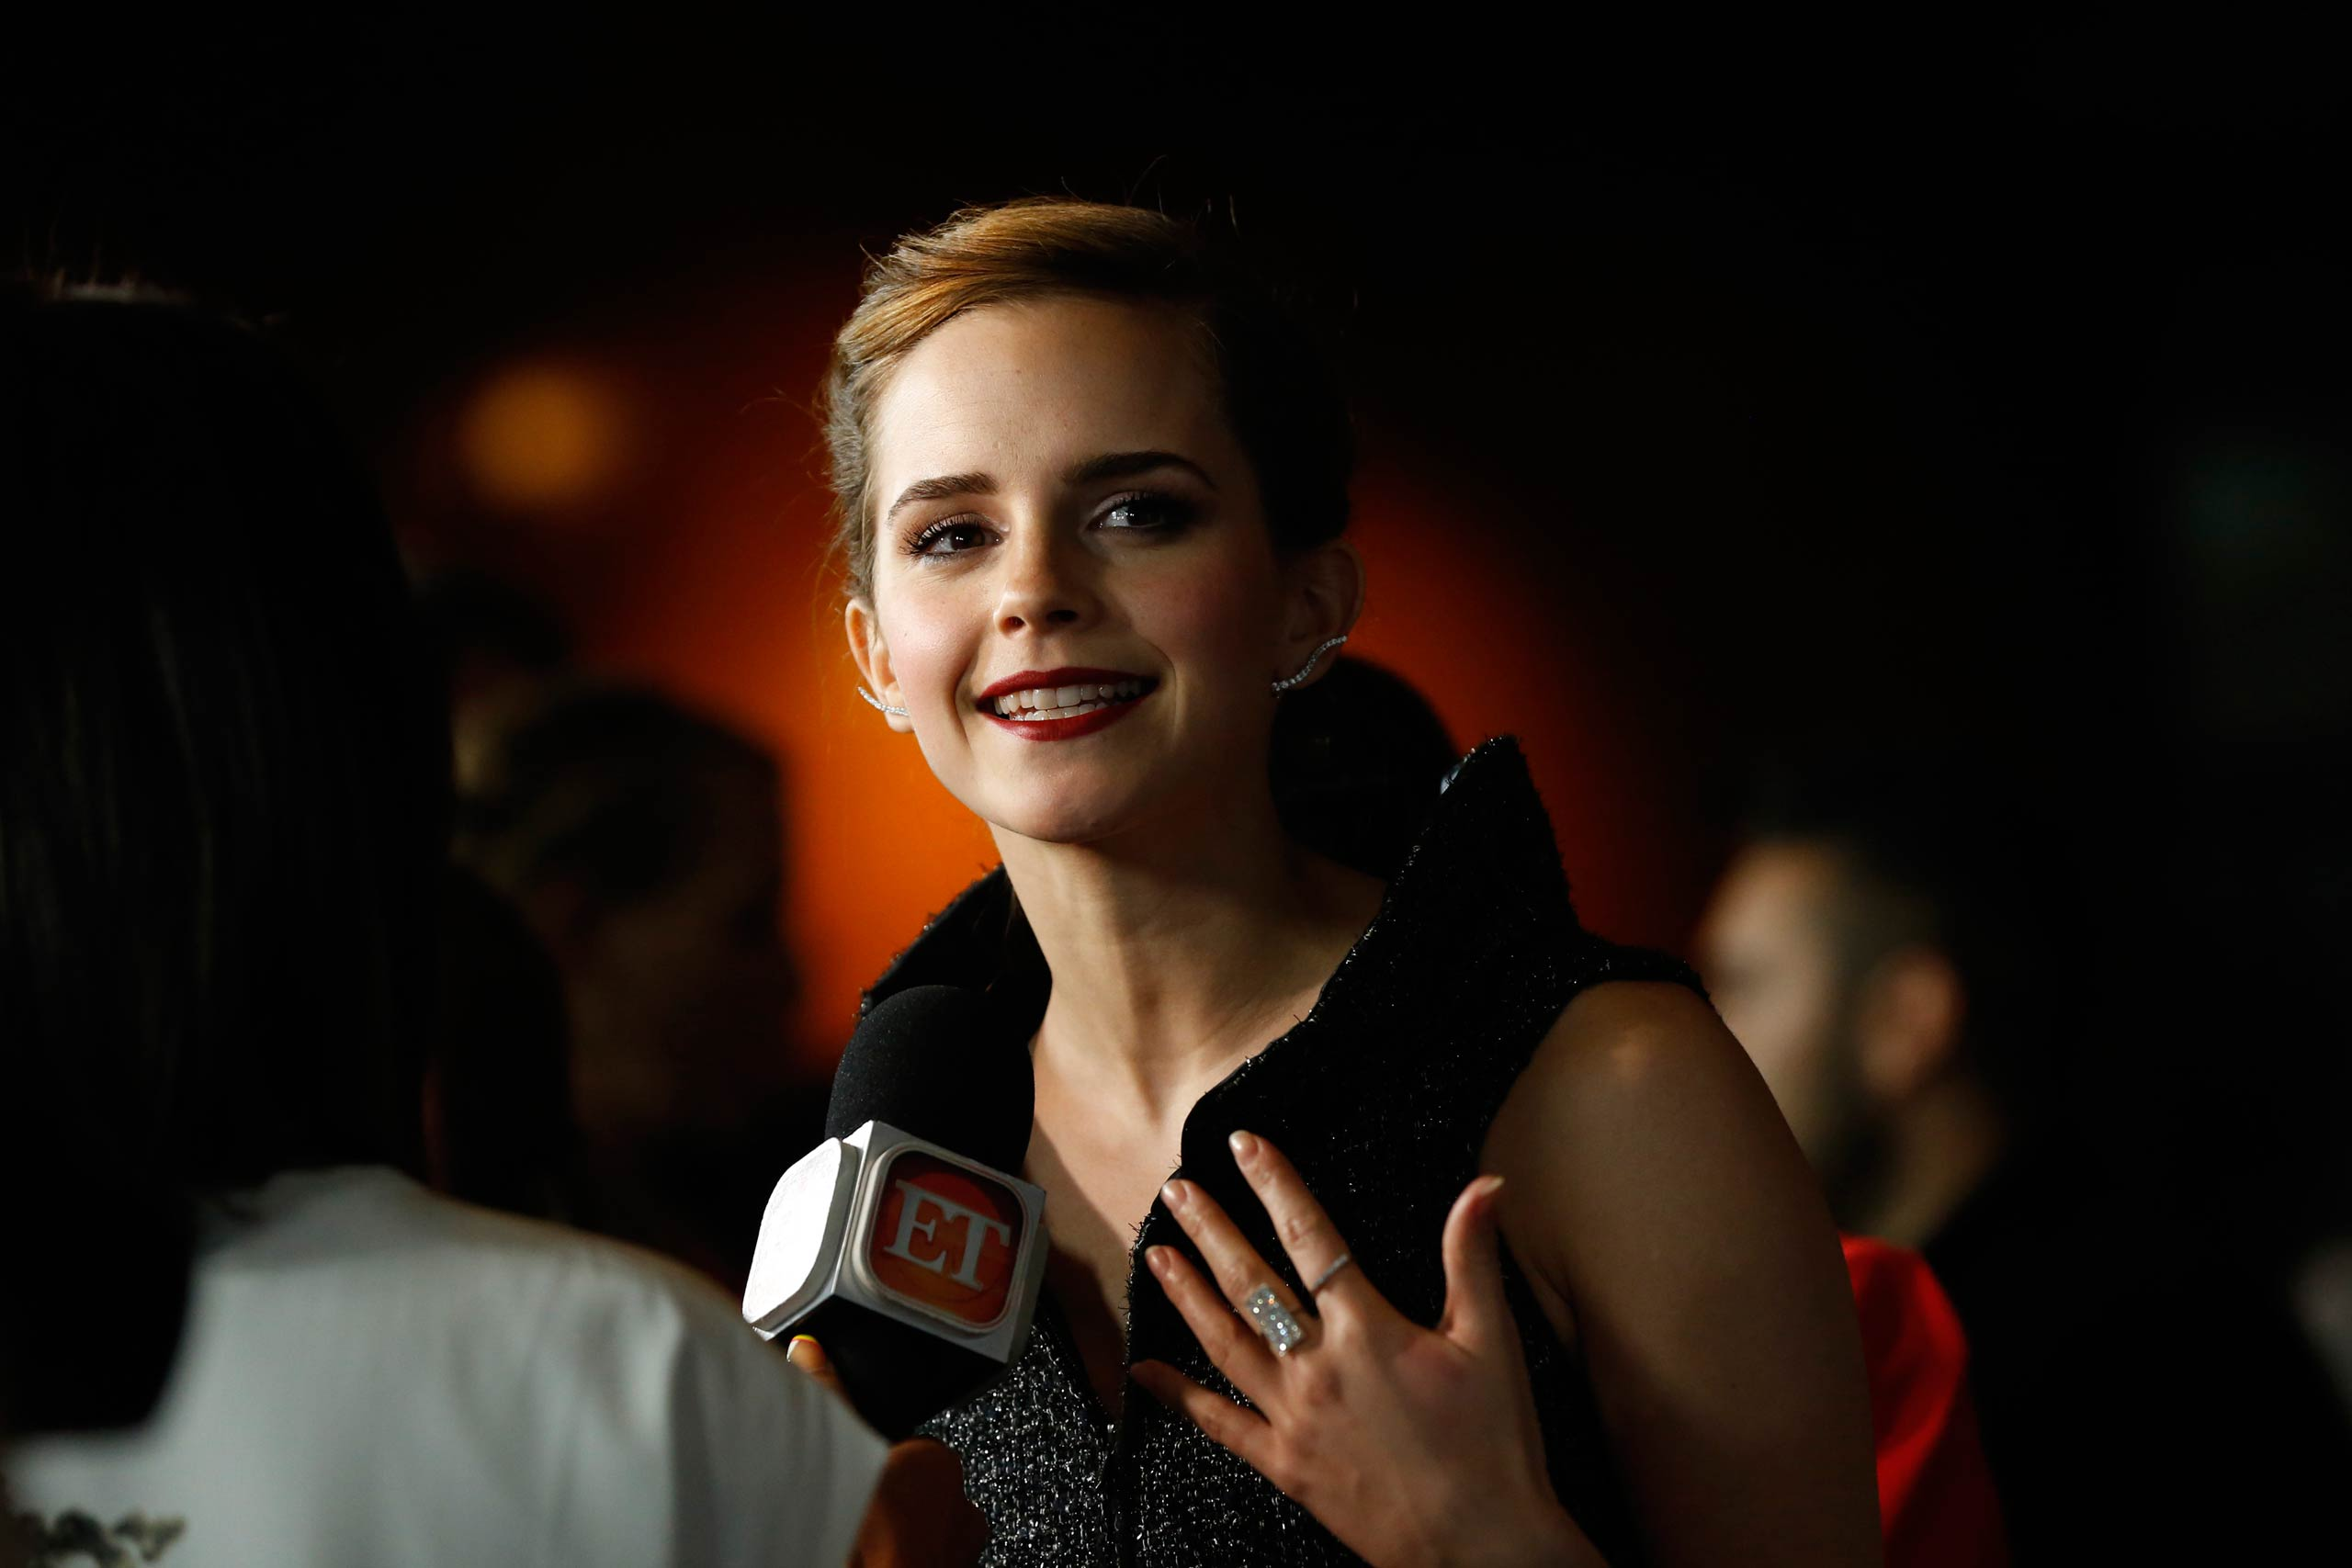 Emma Watson is interviewed at the premiere of <i>The Bling Ring</i> at the Director's Guild of America theater in Los Angeles in 2013.